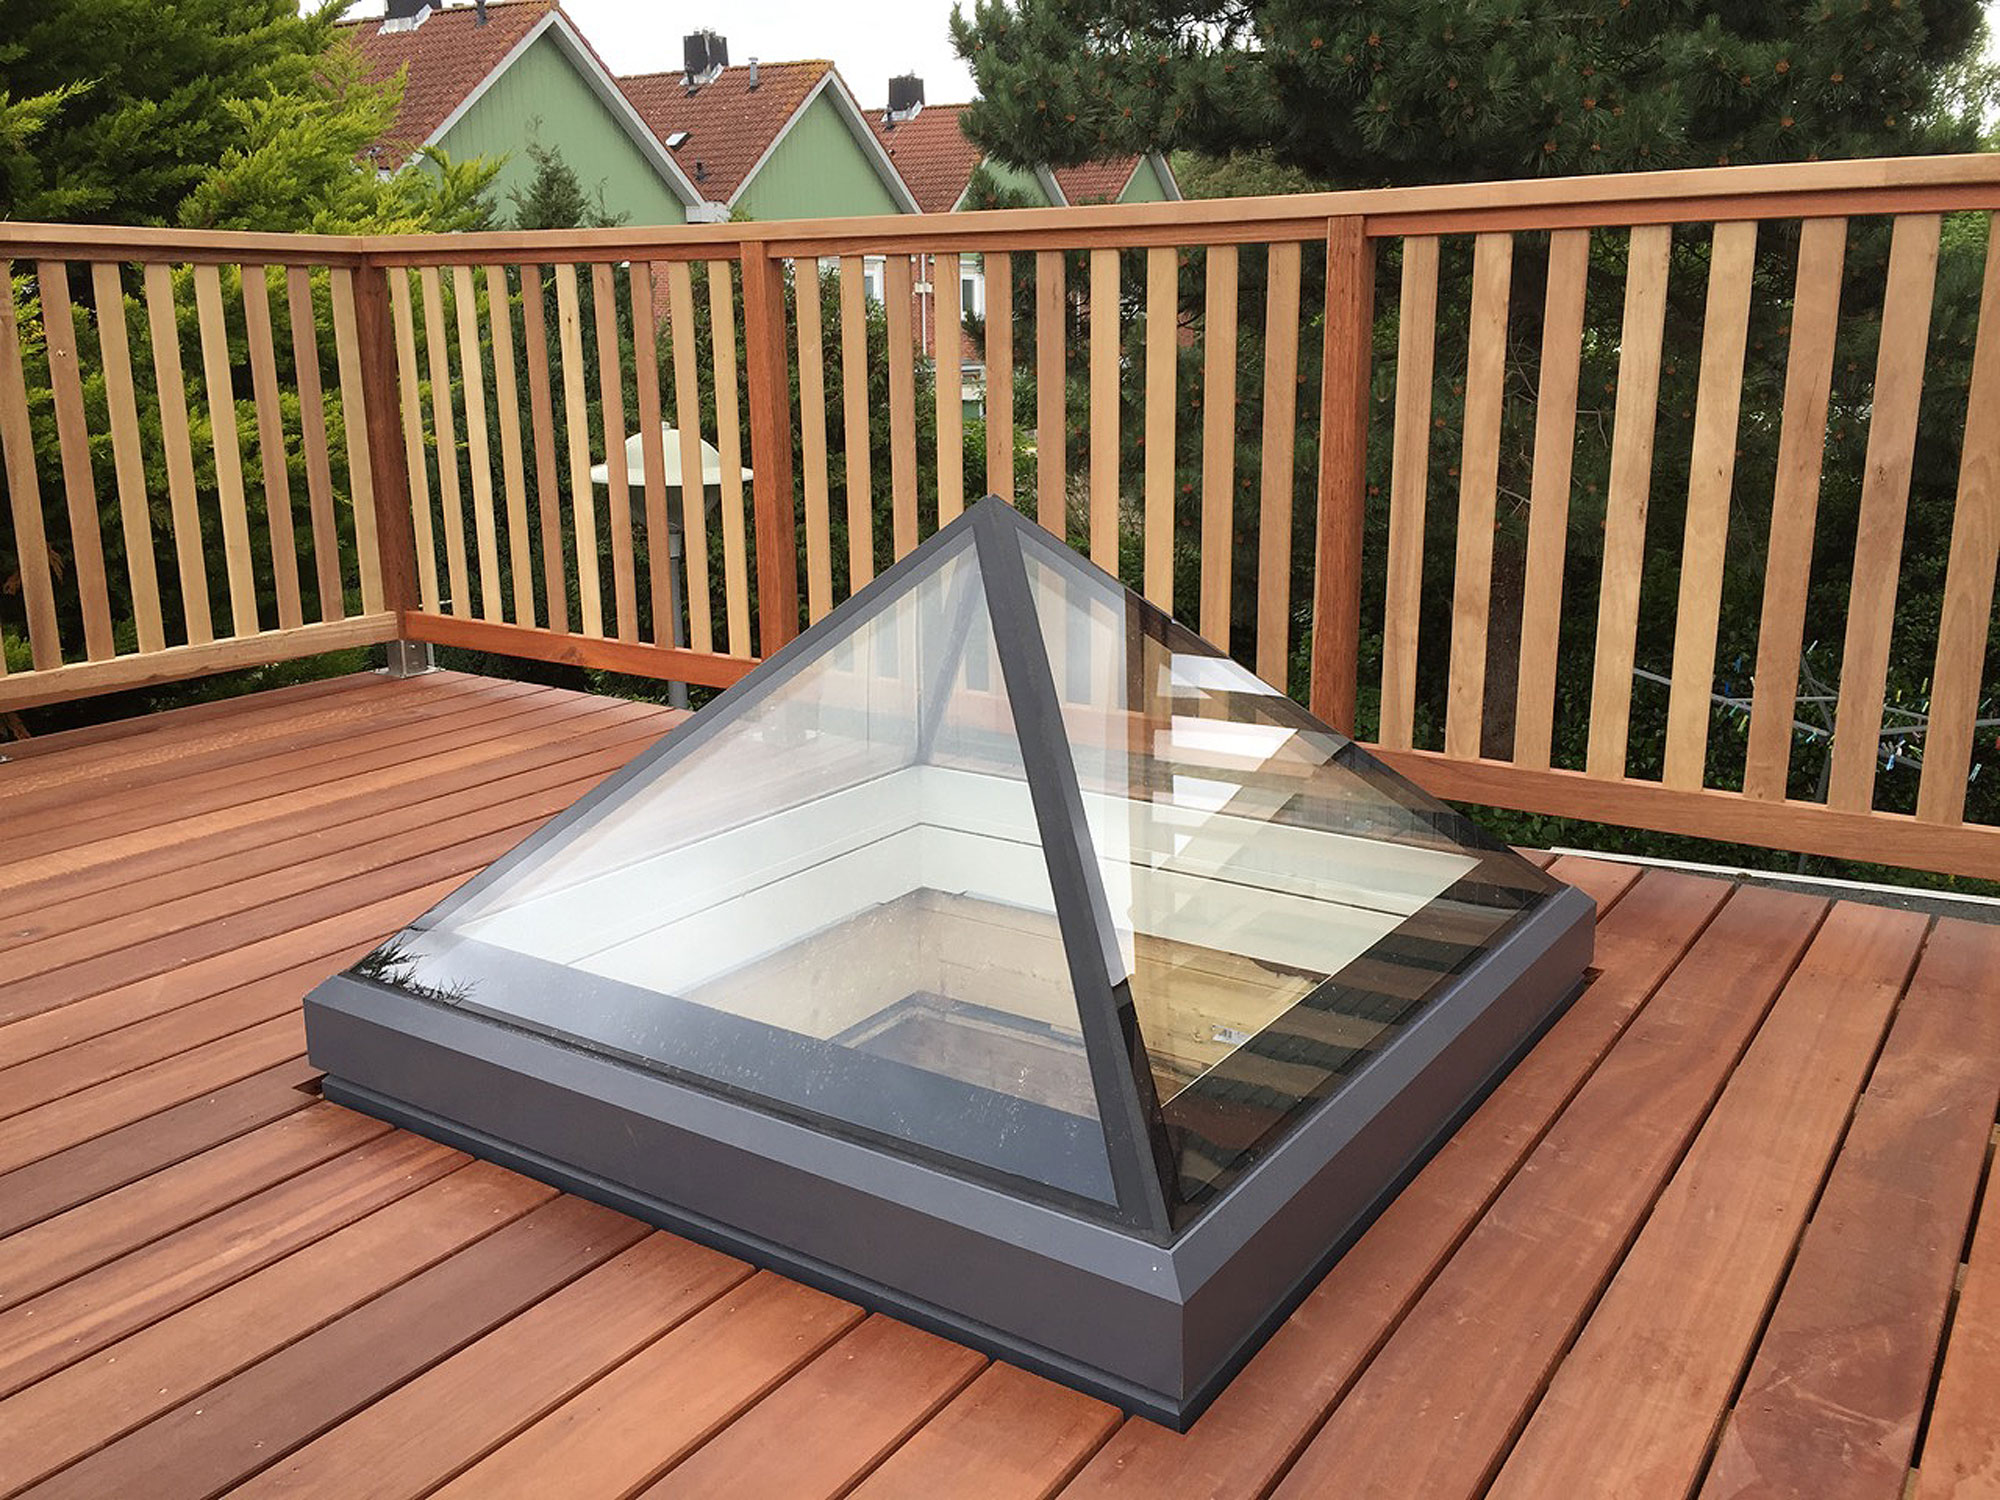 Pyramid Rooflight 2 - Scottish Crown Project